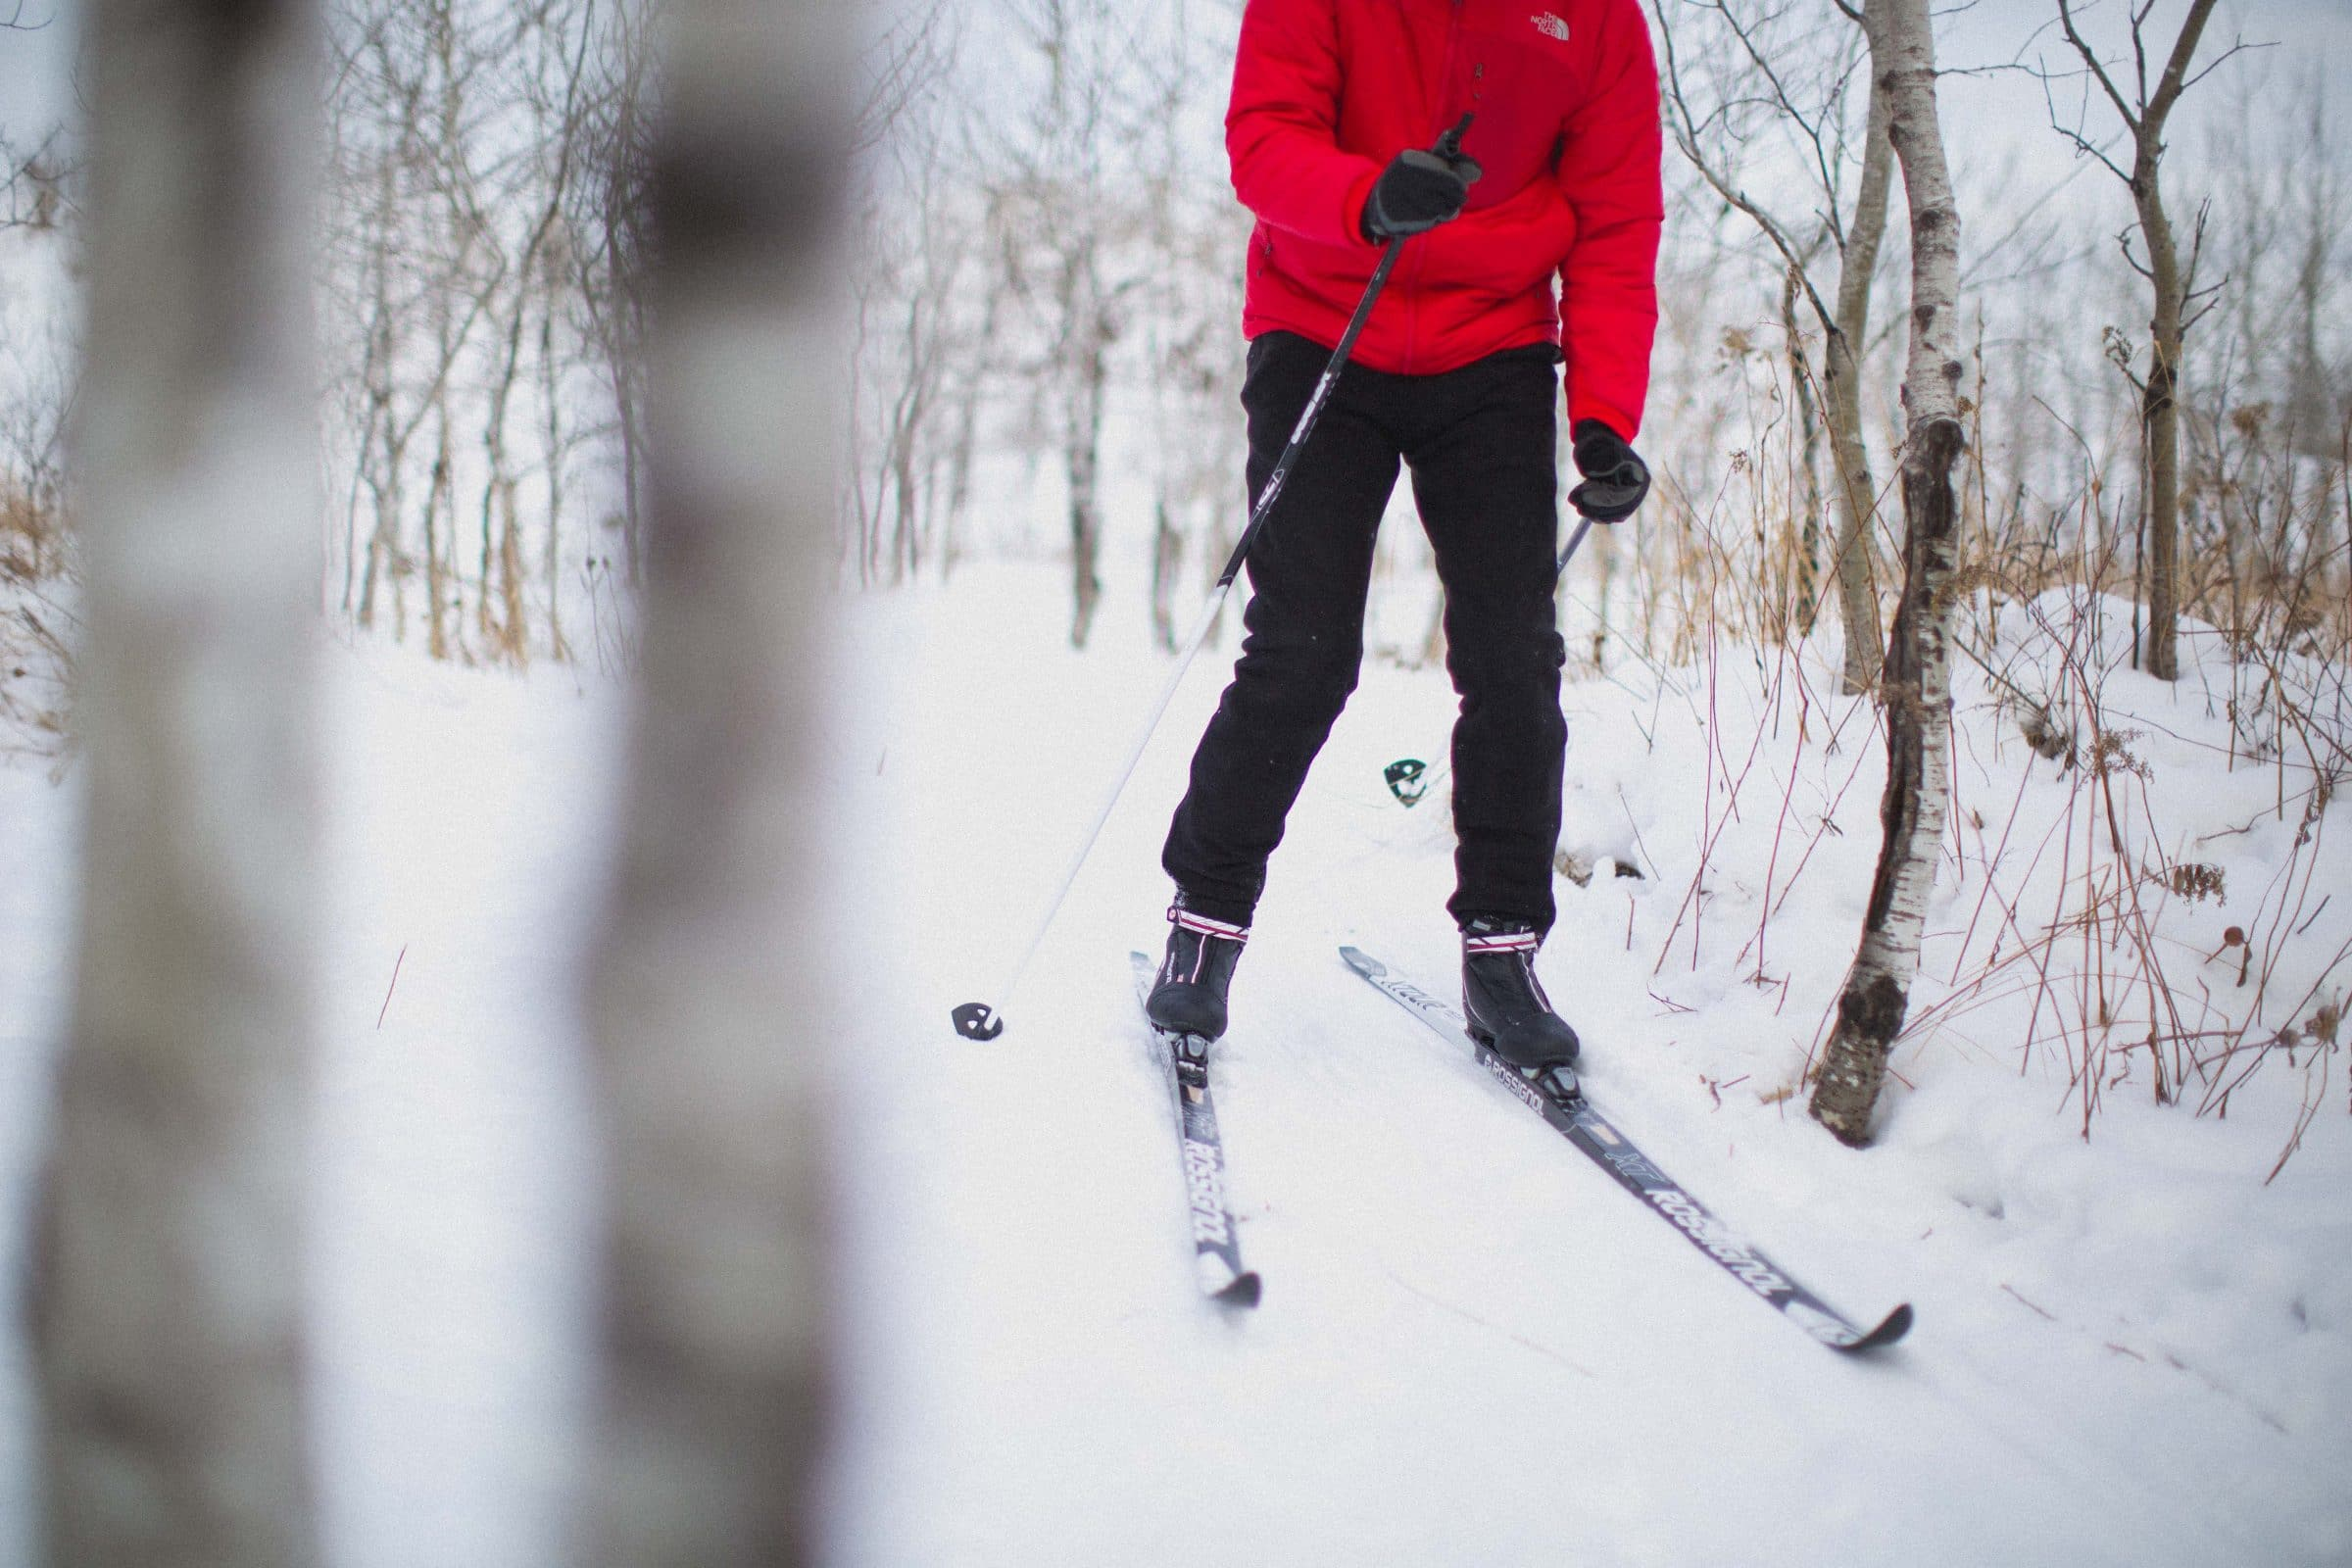 An adult on cross country skis wearing a red sweater glides through a wintery forest.